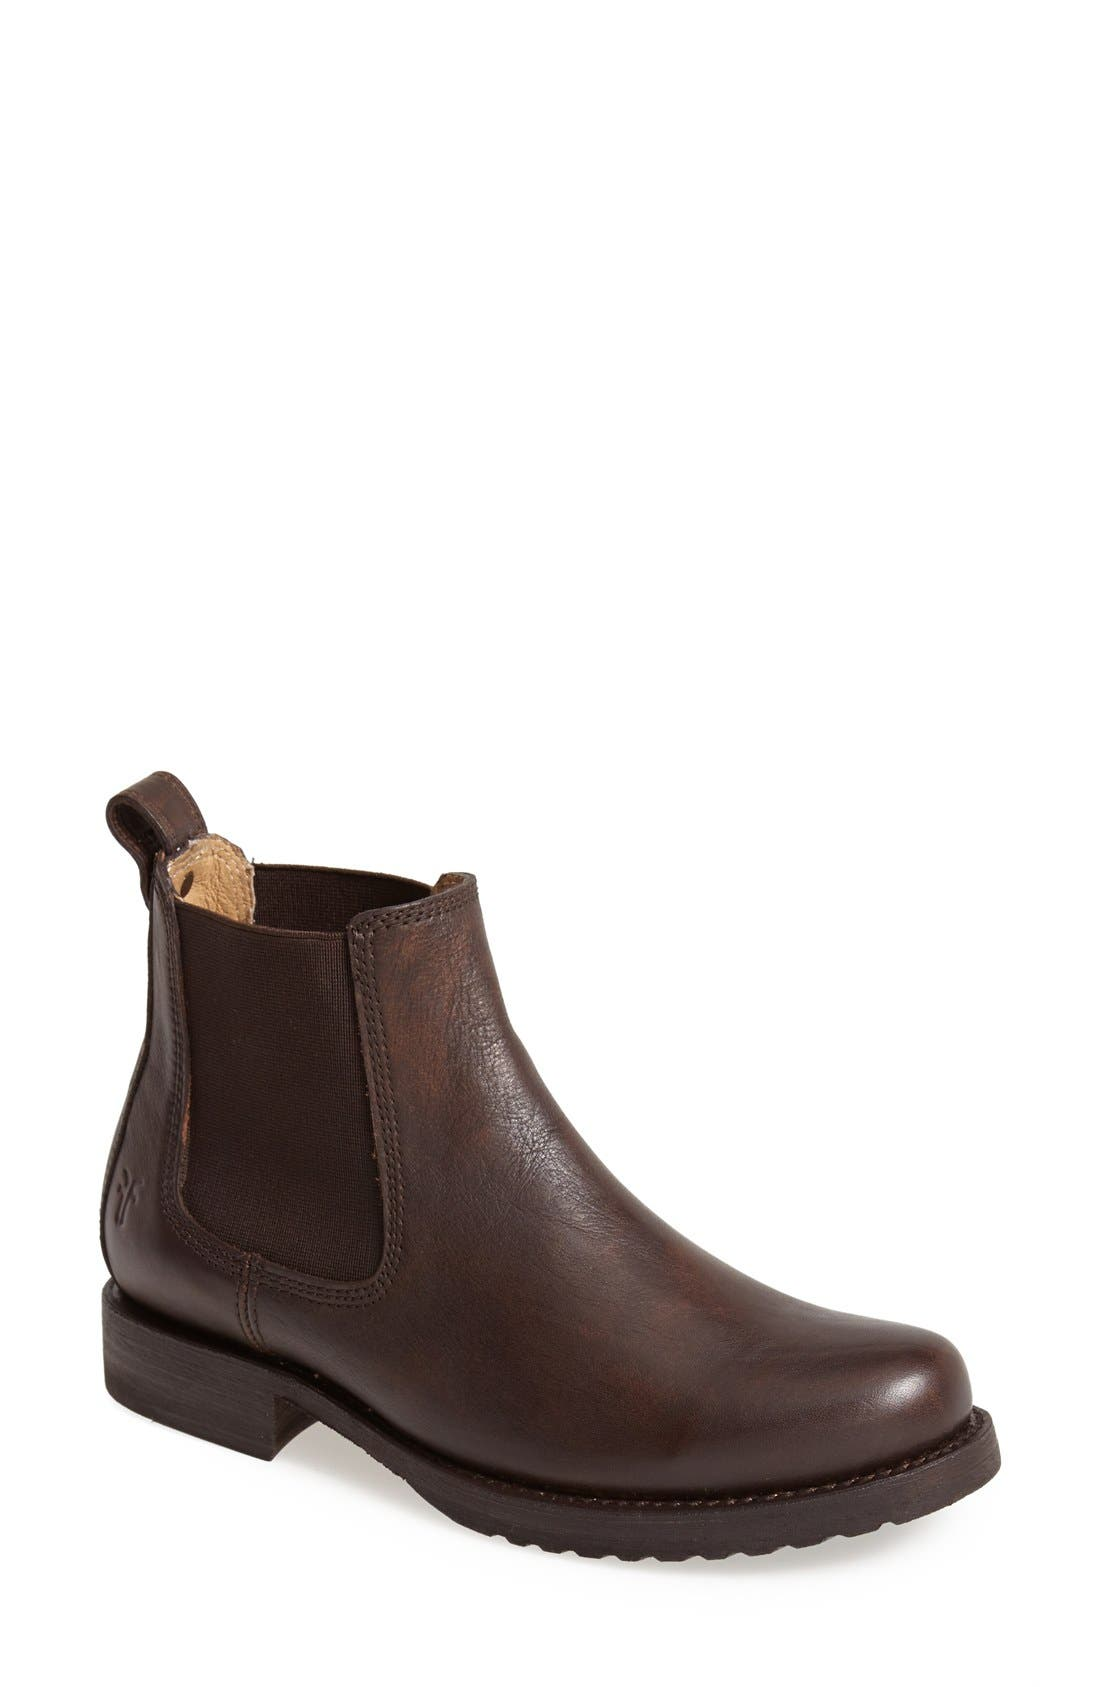 Main Image - Frye 'Veronica' Leather Chelsea Bootie (Women)